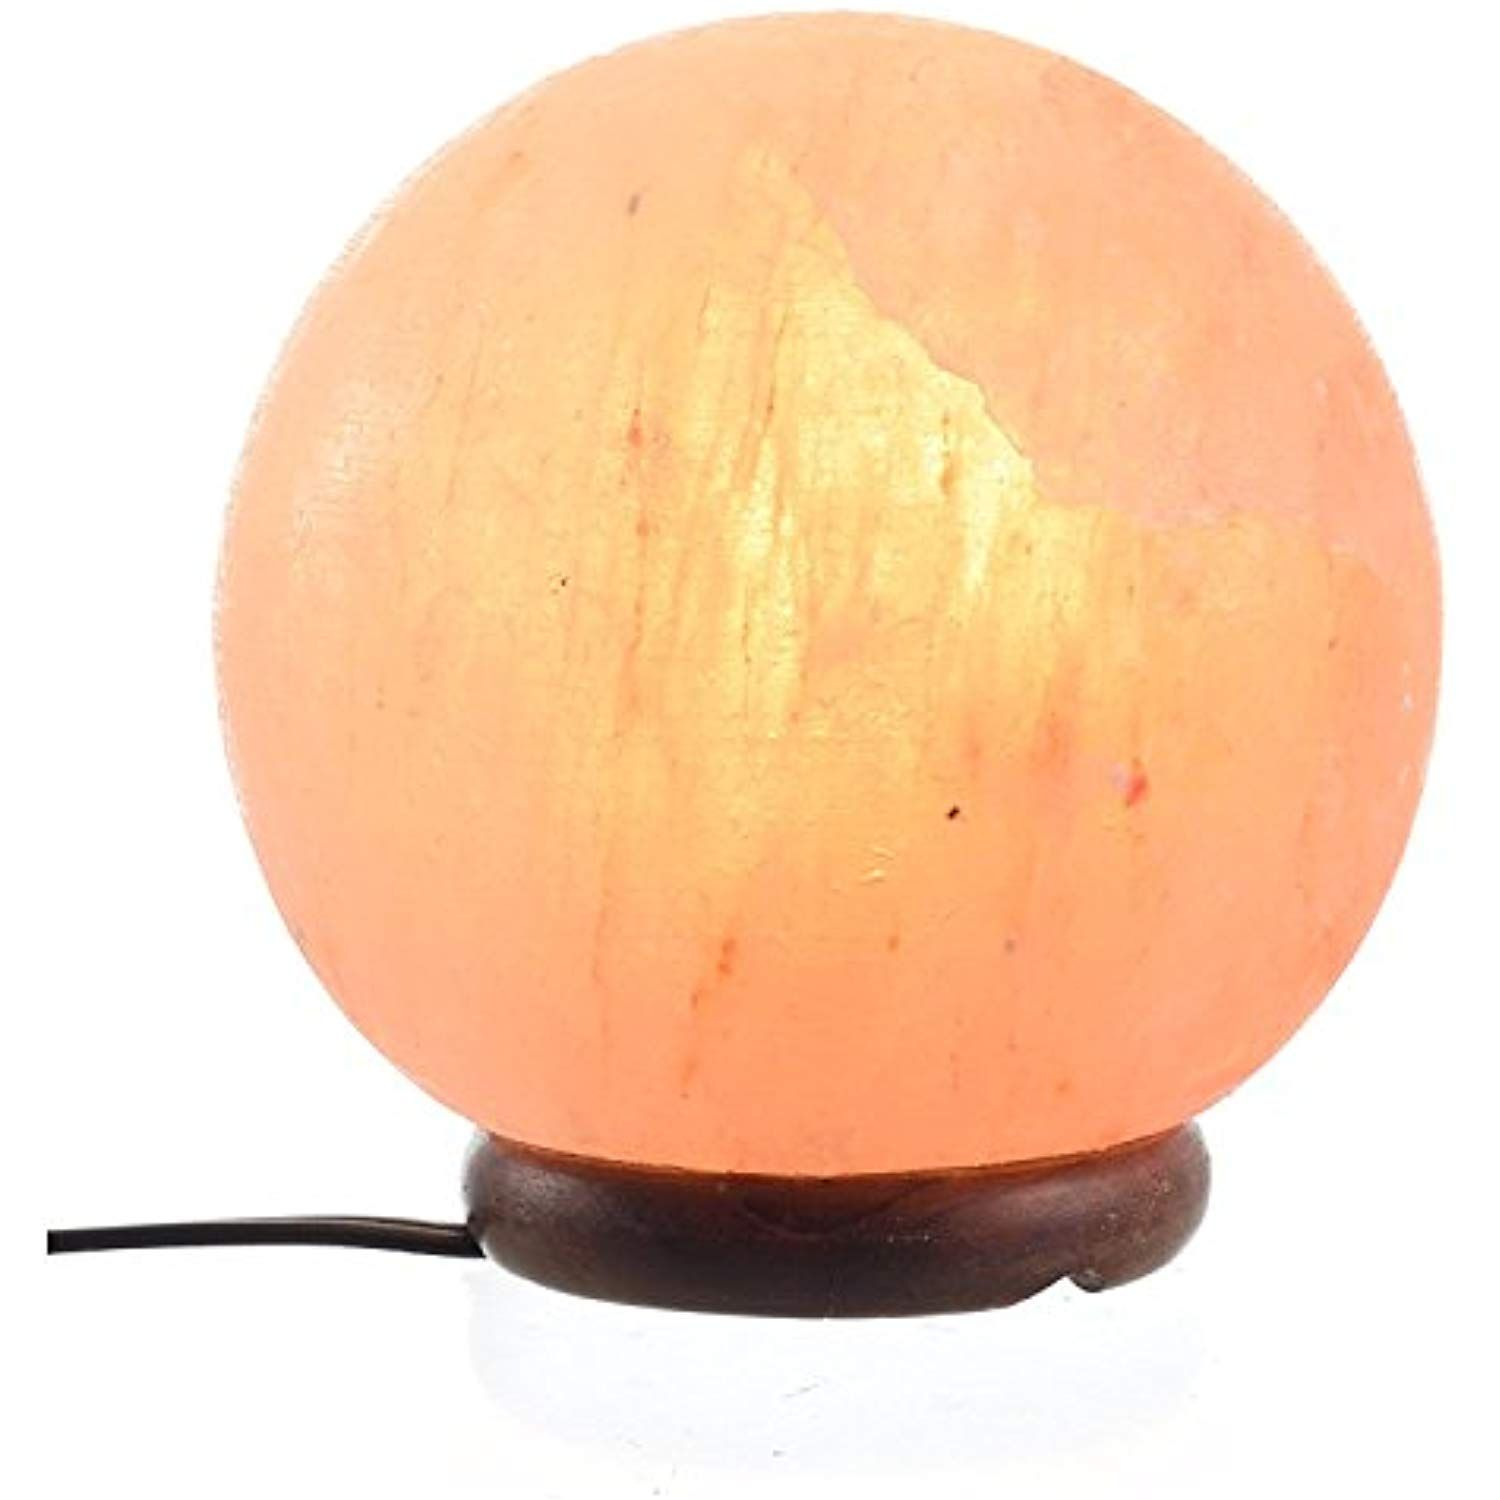 Shartpro Ball Natural Himalayan Salt Lamp Handcrafted From Himalayan Rock Salt Crystals Beautiful Natural Himalayan Salt Lamp Salt Lamp Himalayan Salt Lamp